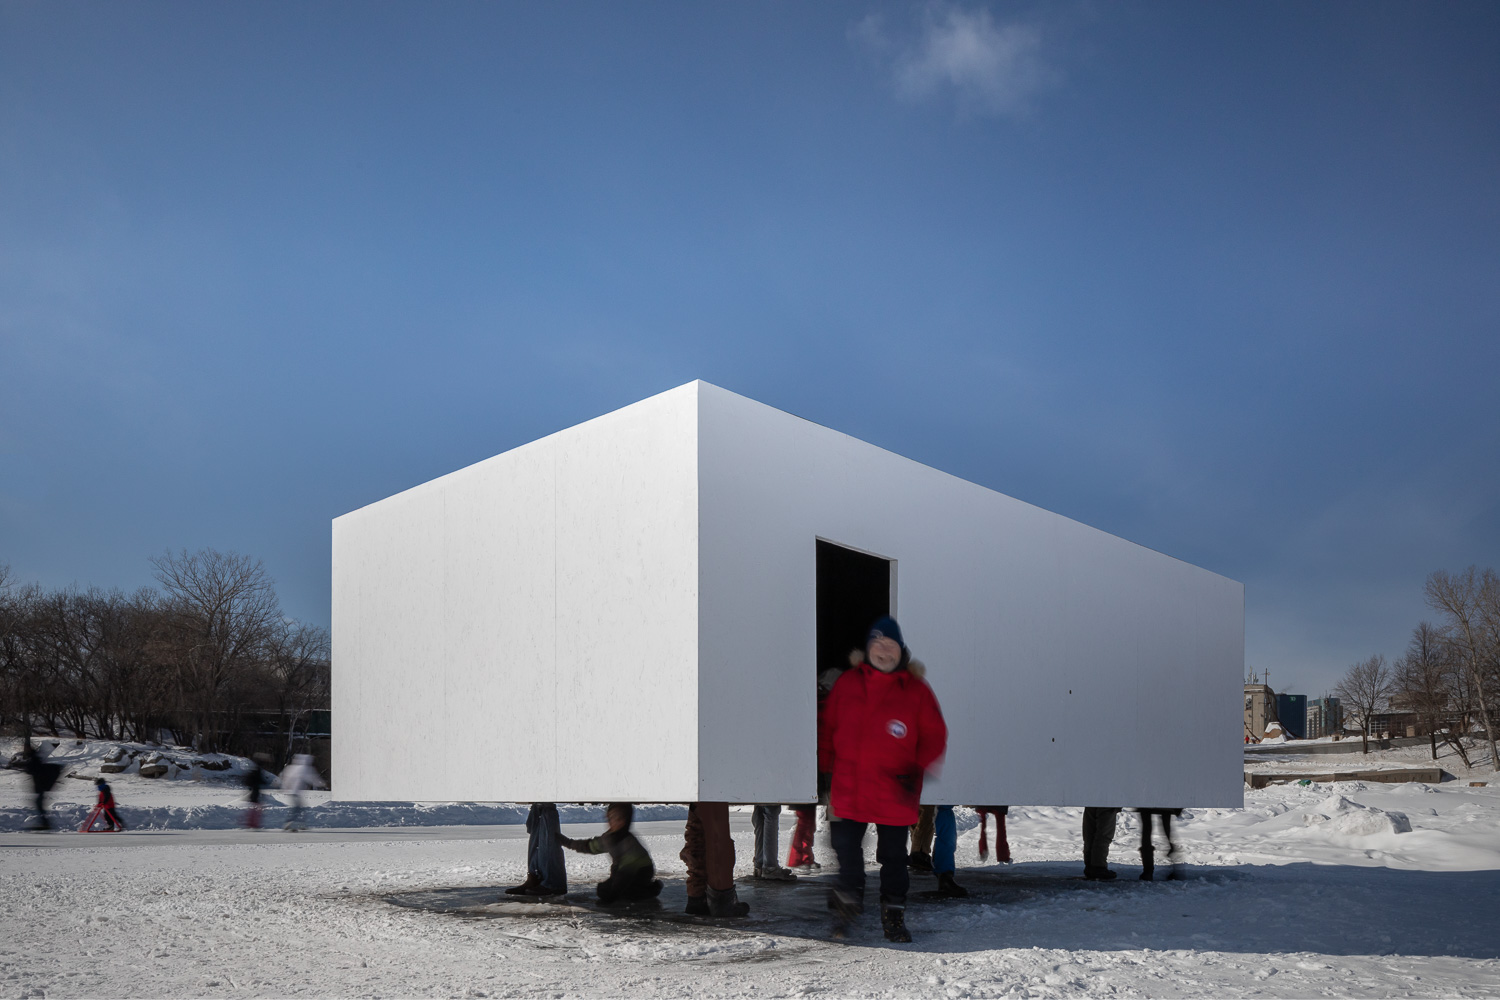 Hoverbox by NAICE Architecture & Design